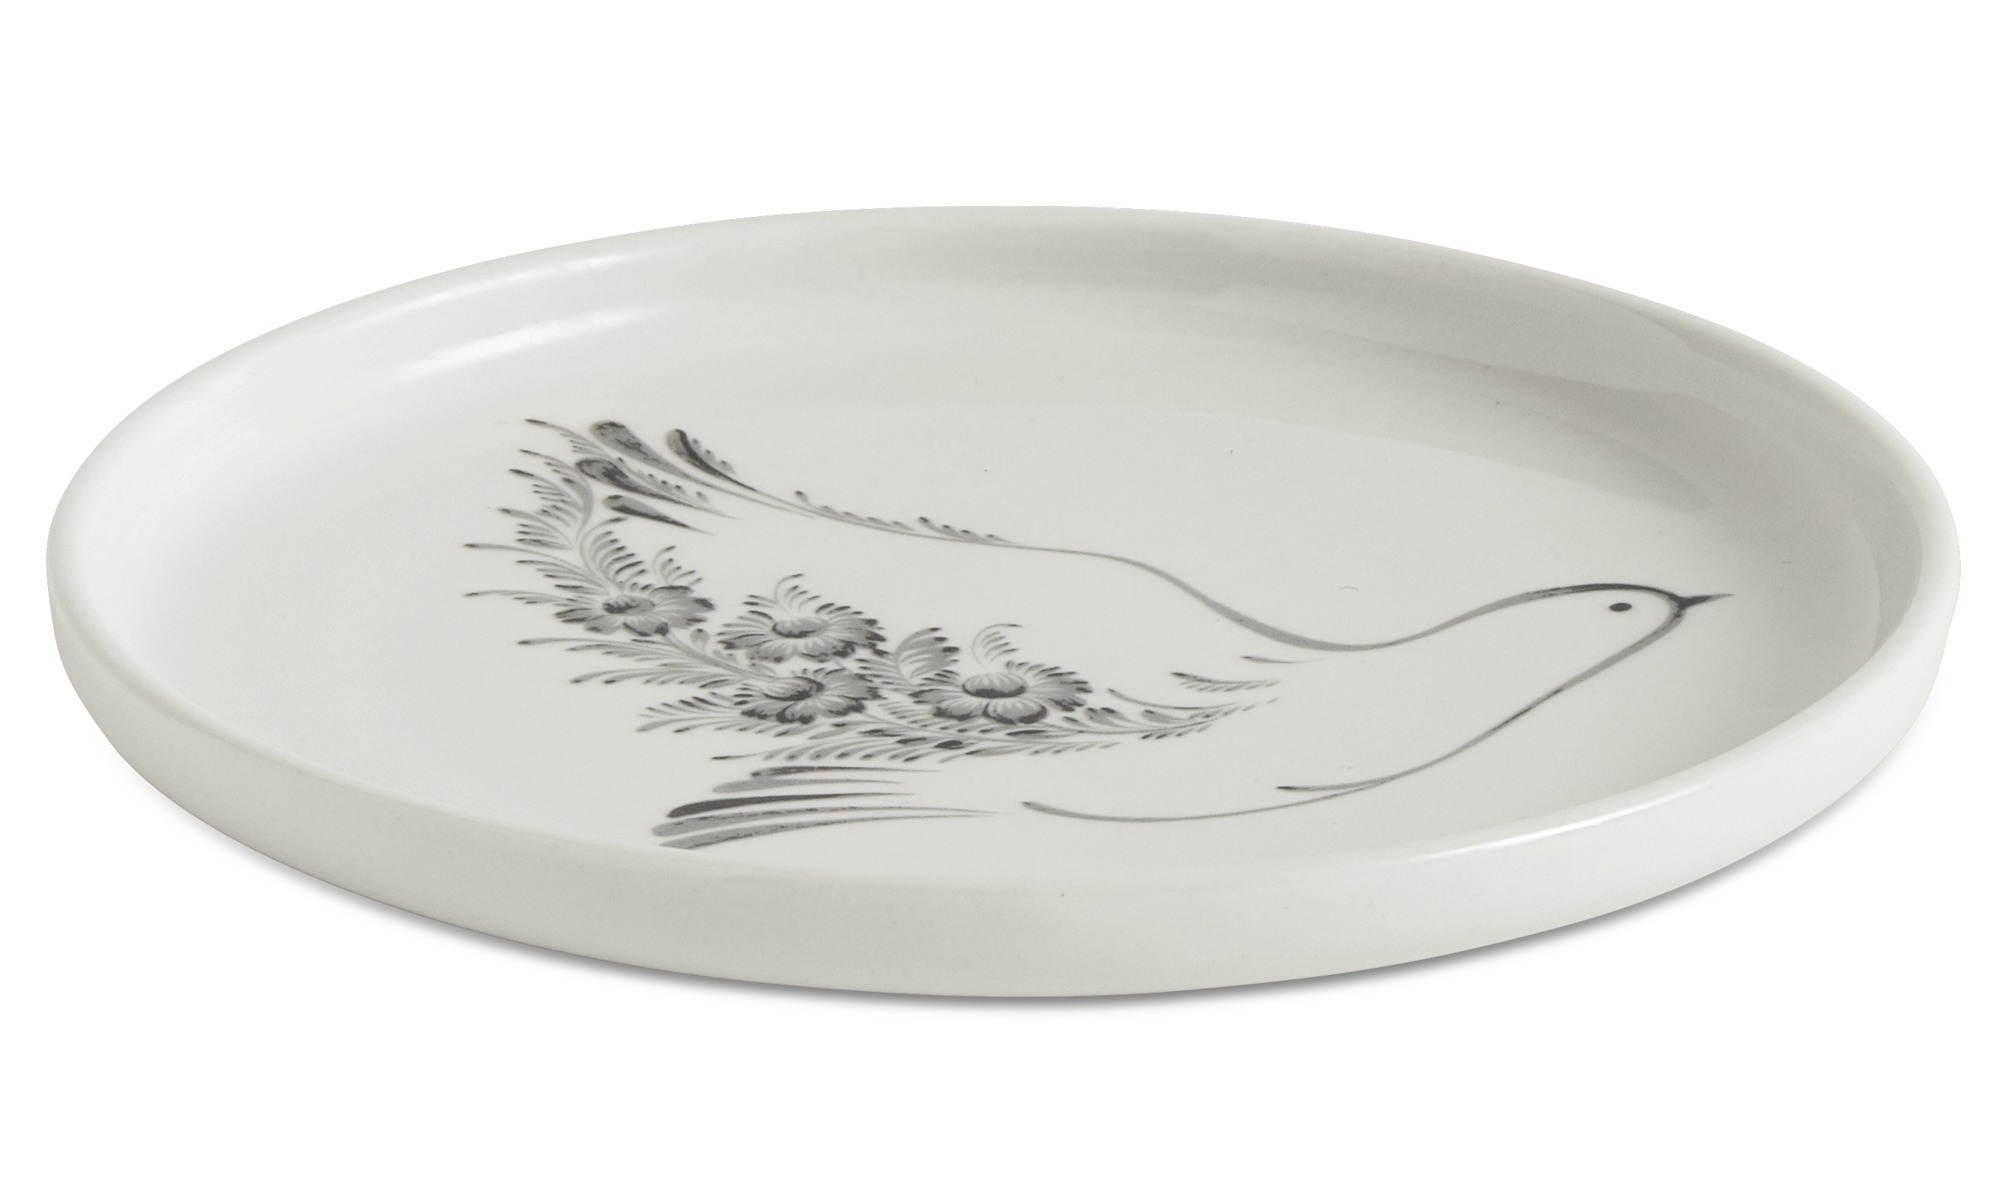 nora breakfast plates with floral pattern - BoConcept